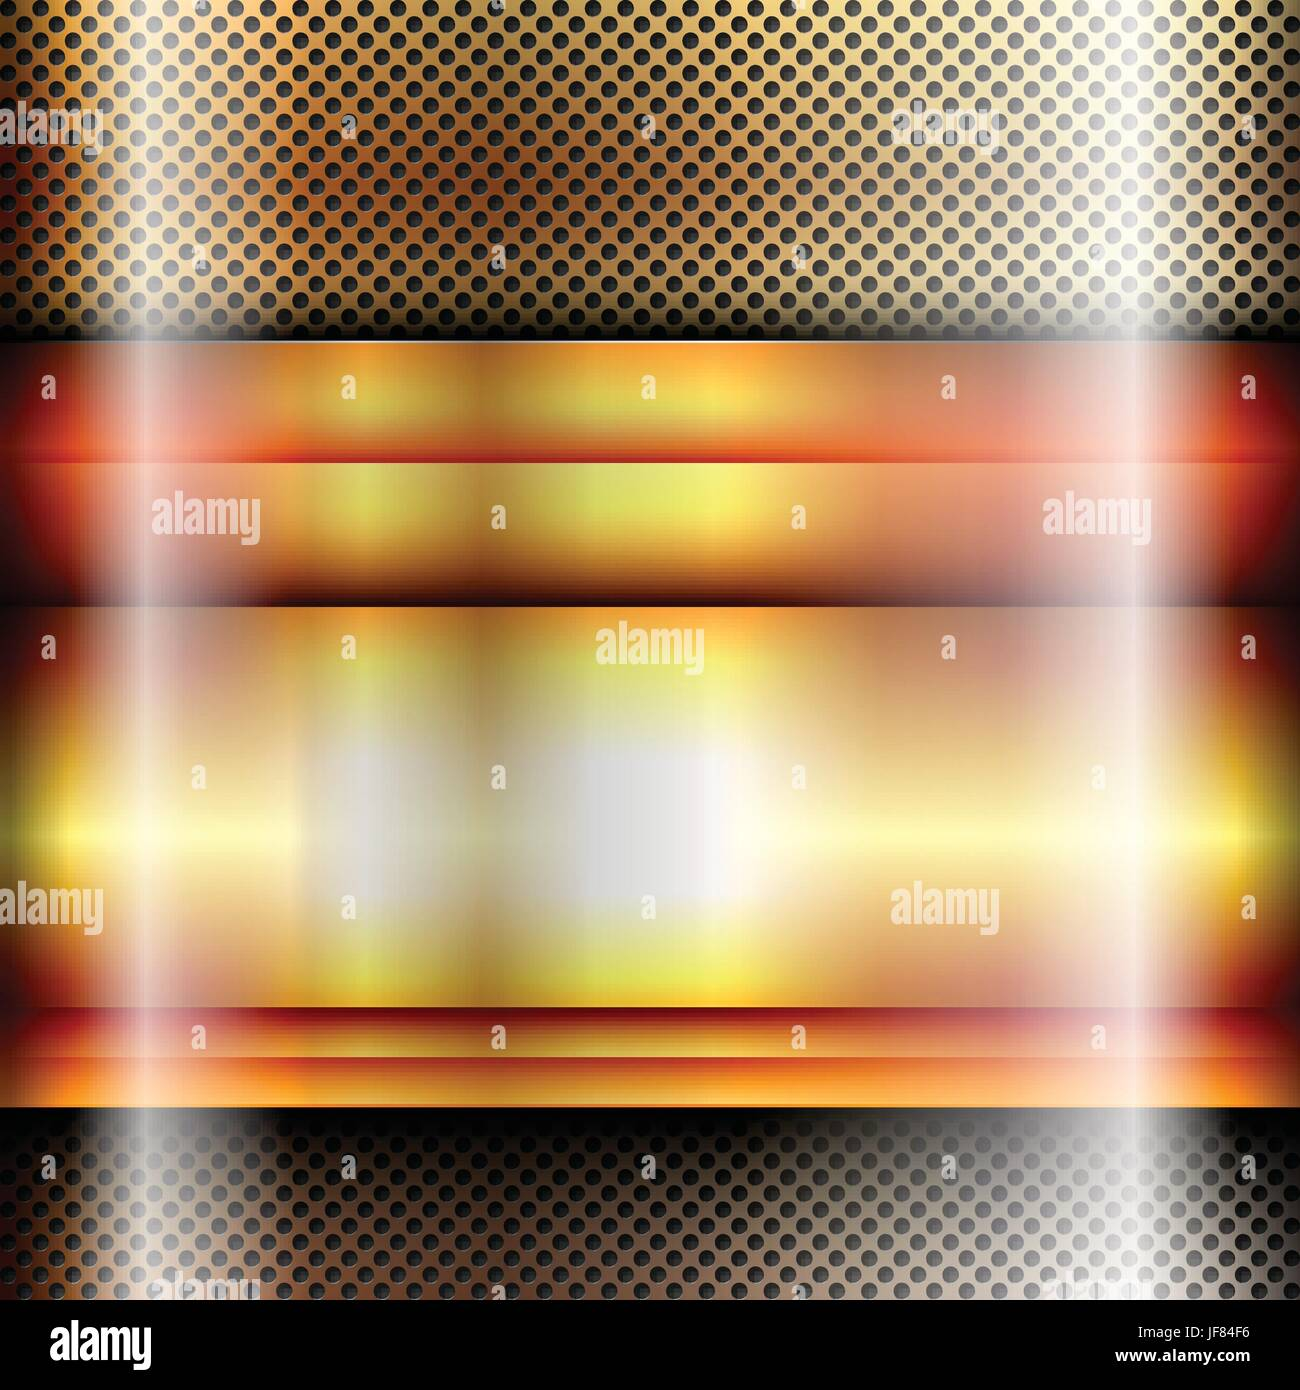 metal, square, banner, glossy, metallic, shaddow, shadow, gold, metal, square, - Stock Vector